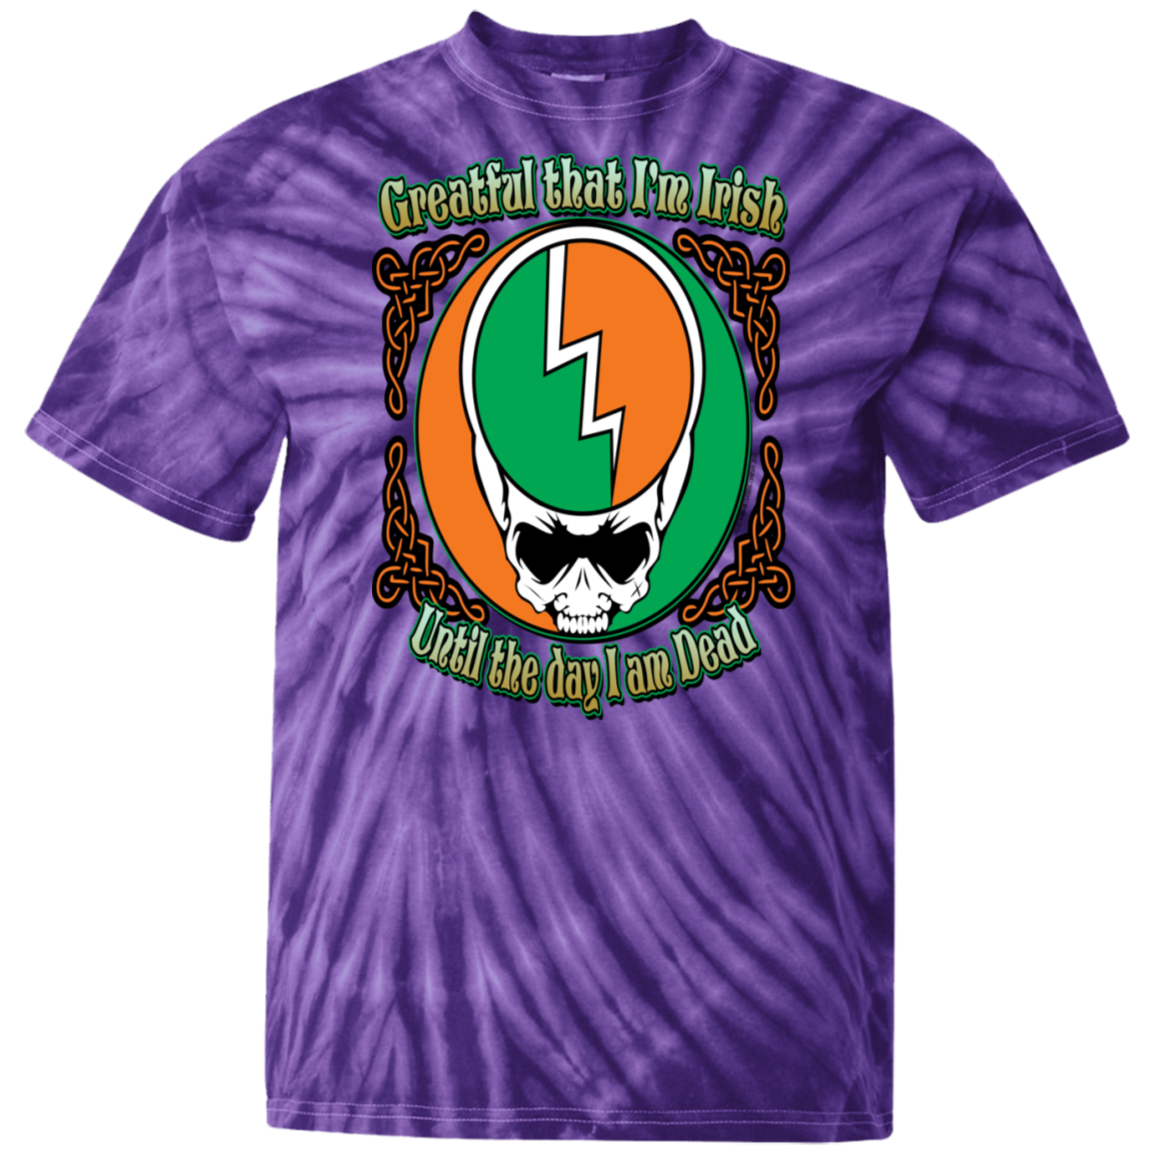 Grateful Irish - Celtic Warrior 100% Cotton Tie Dye T-Shirt